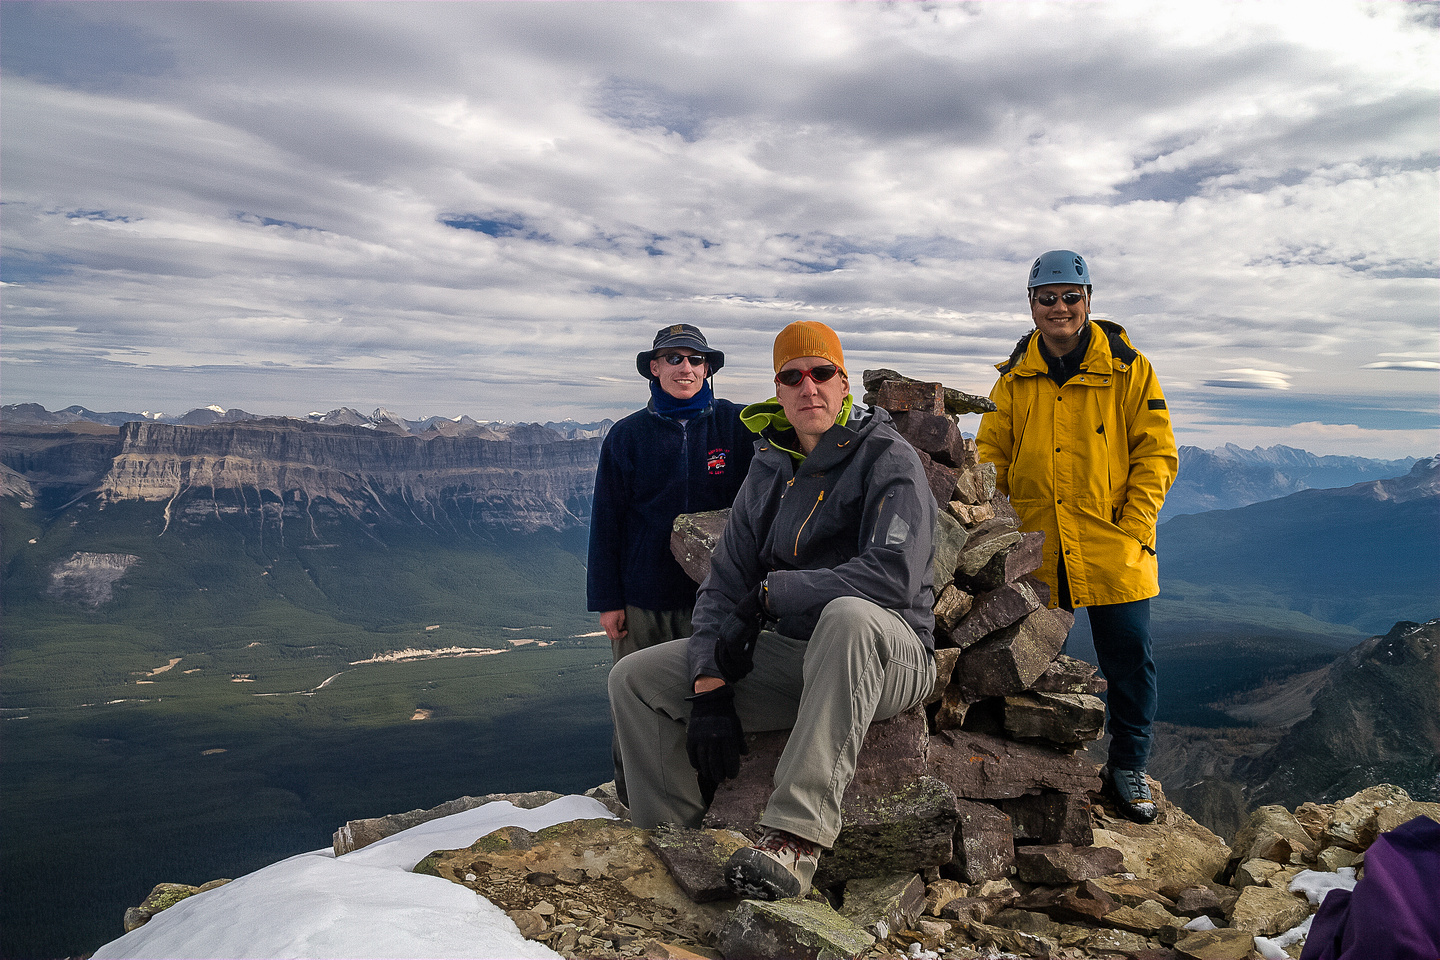 Calvin, Vern and Sonny on the summit.